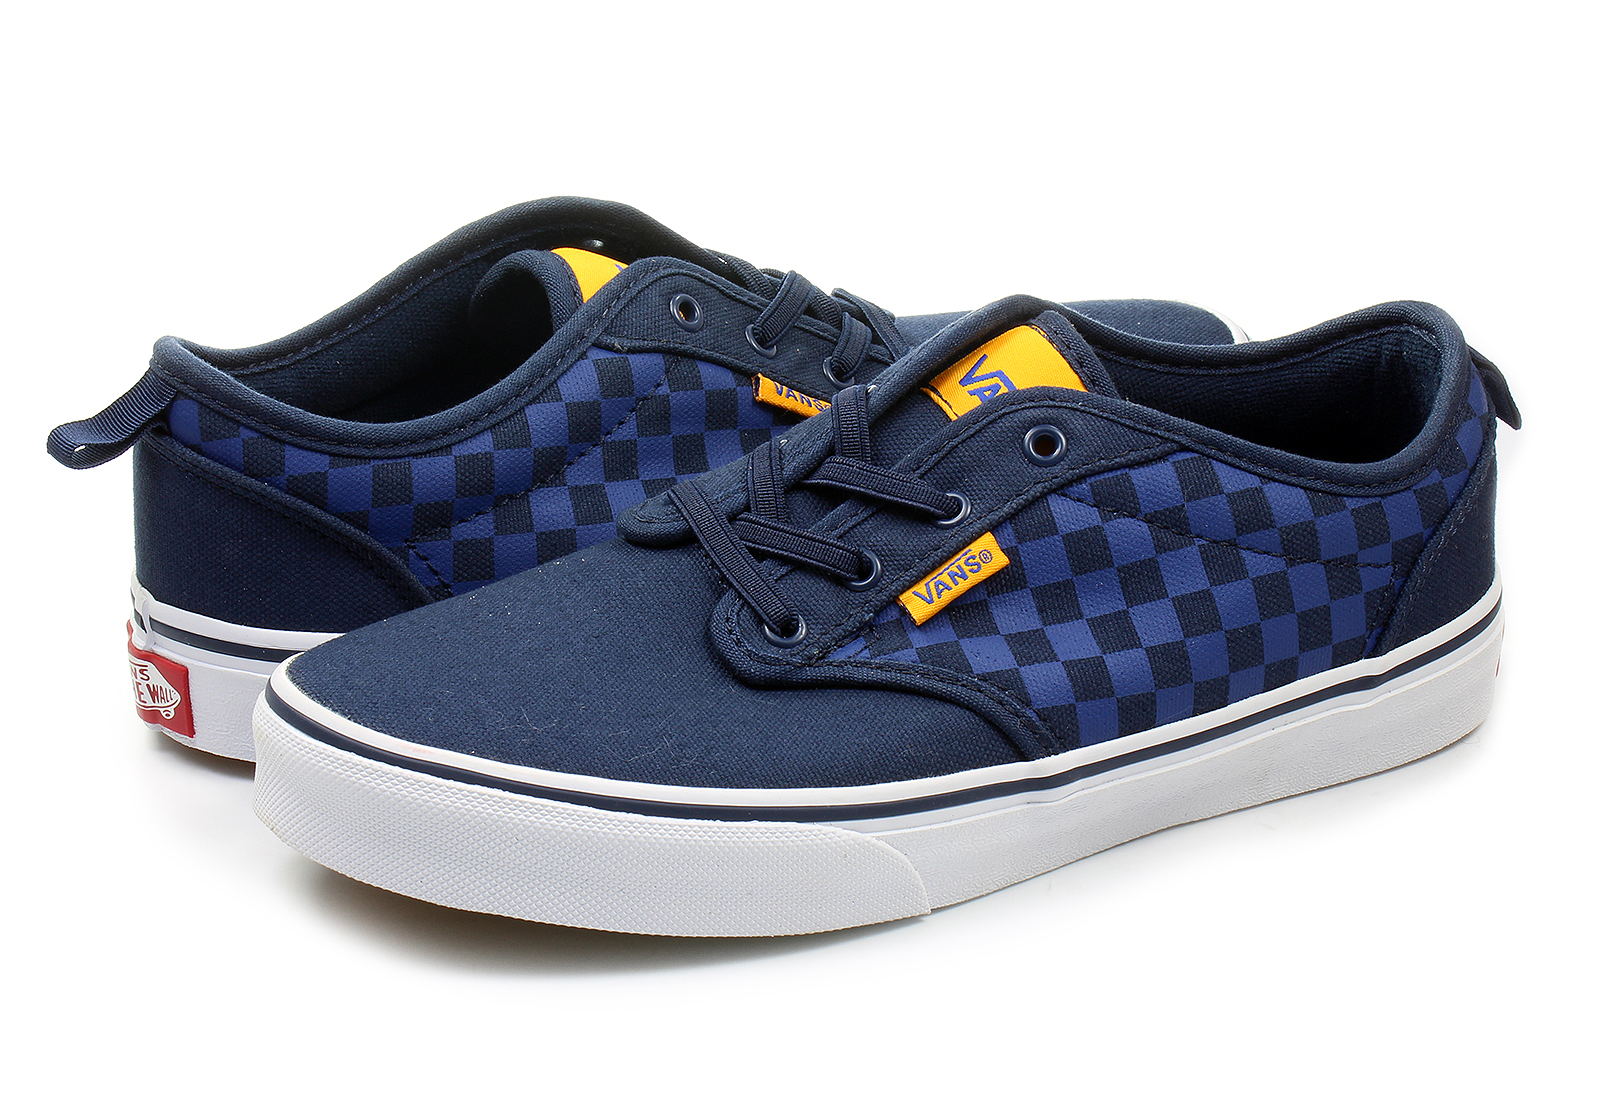 Vans Sneakers - Atwood Slip-on - V004LMMIJ - Online shop for ... d6bb7cfd7f